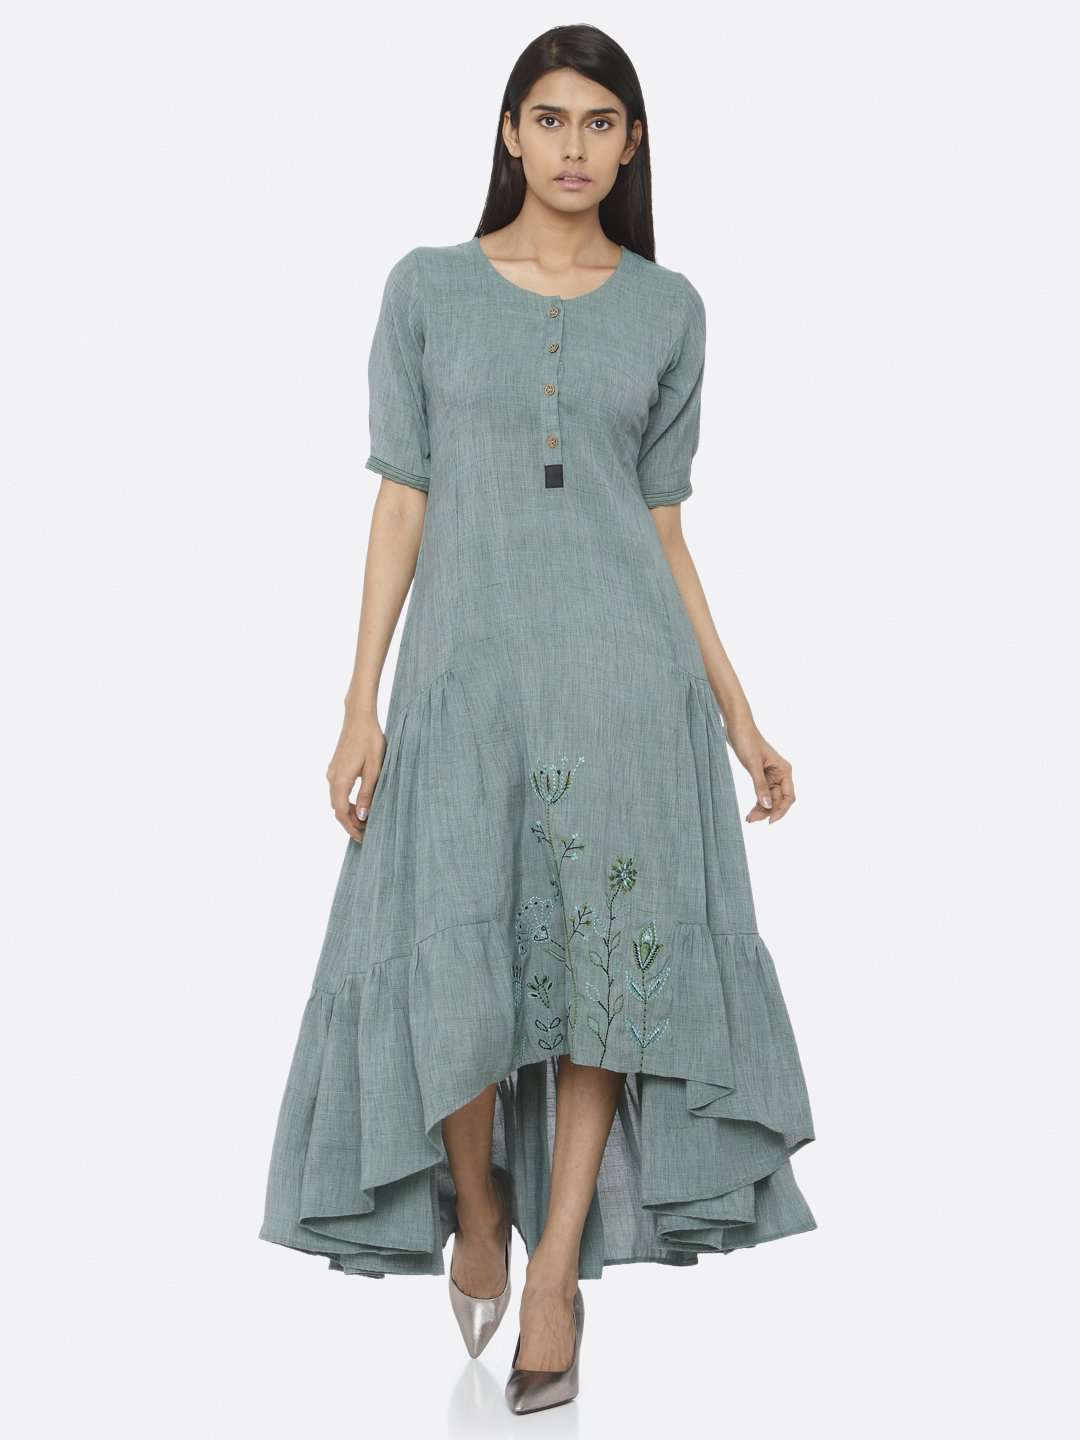 Rusty Green Embroidered Rayon Two Tone A-Line Dress